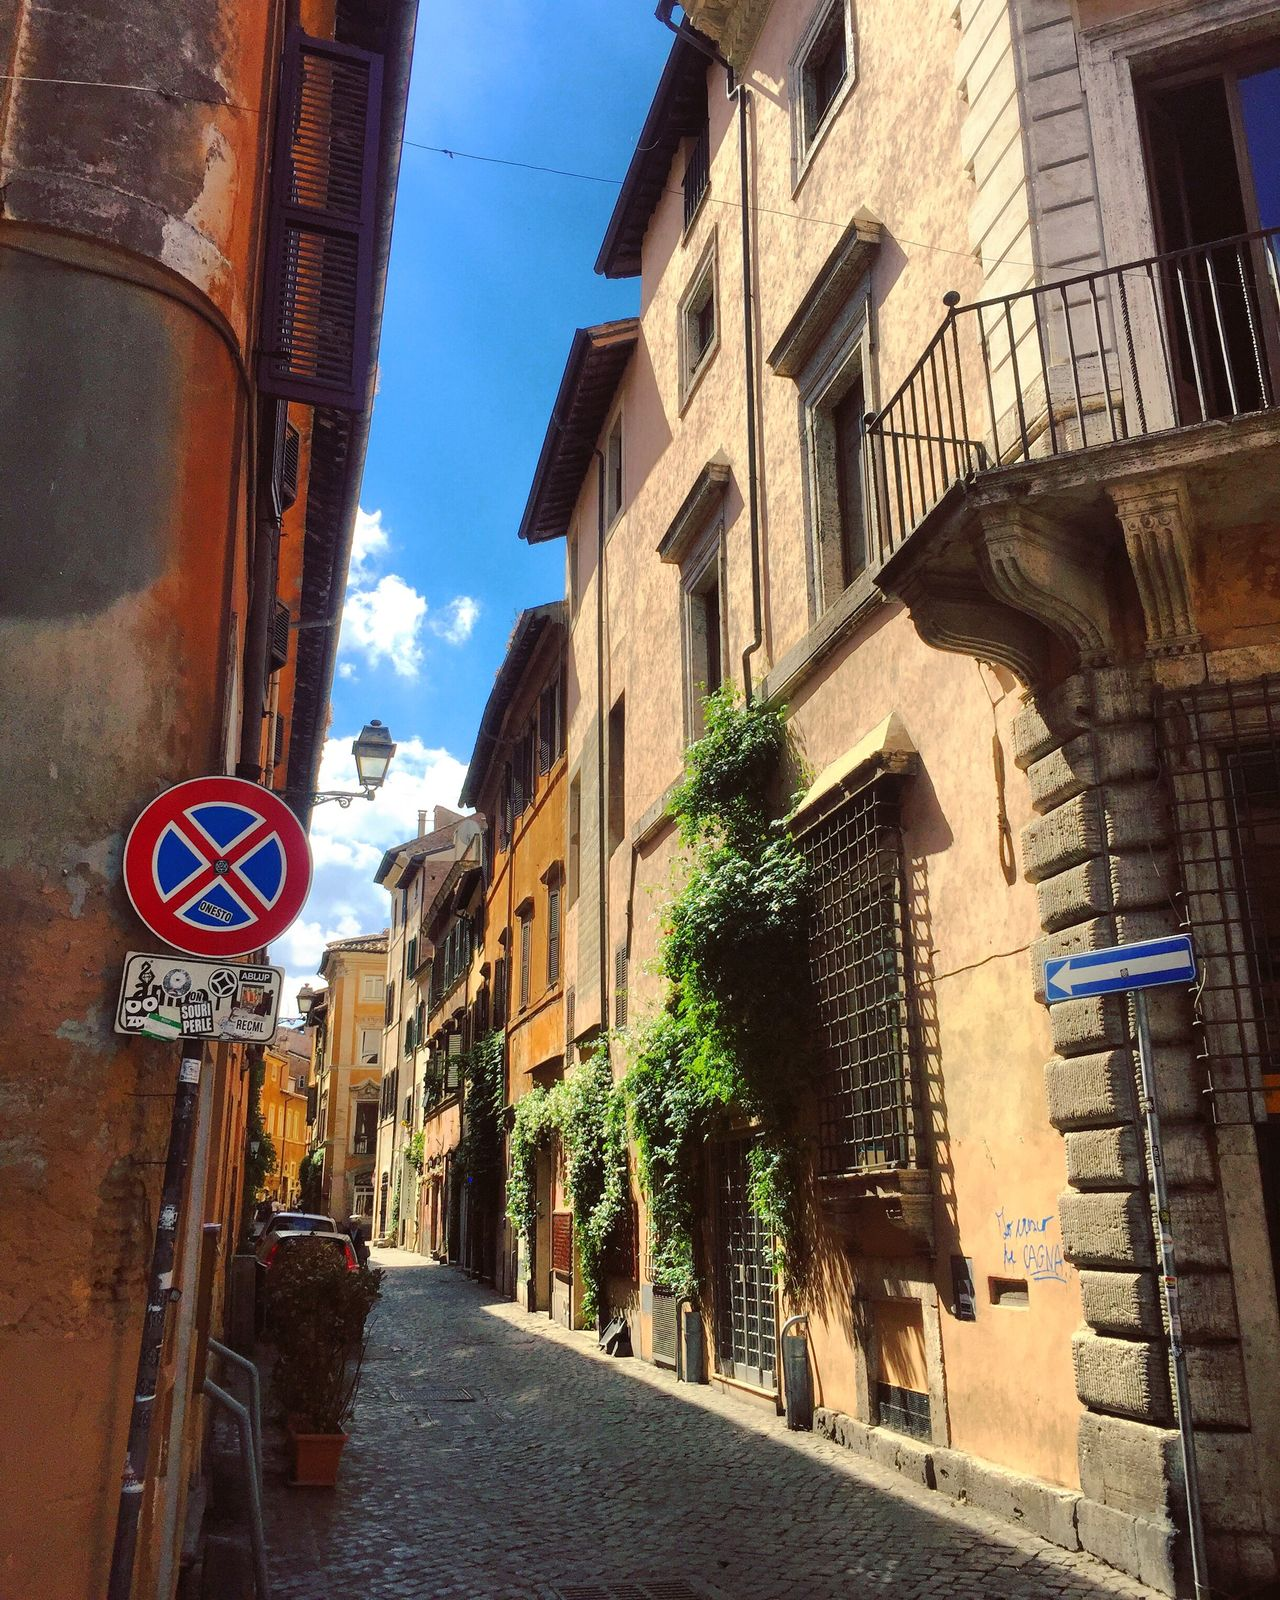 Communication Road Sign Architecture Text Built Structure Building Exterior Guidance Day Speed Limit Sign No People Outdoors Sky Roman Rome Street Wandering Italy Window Garden Balcony